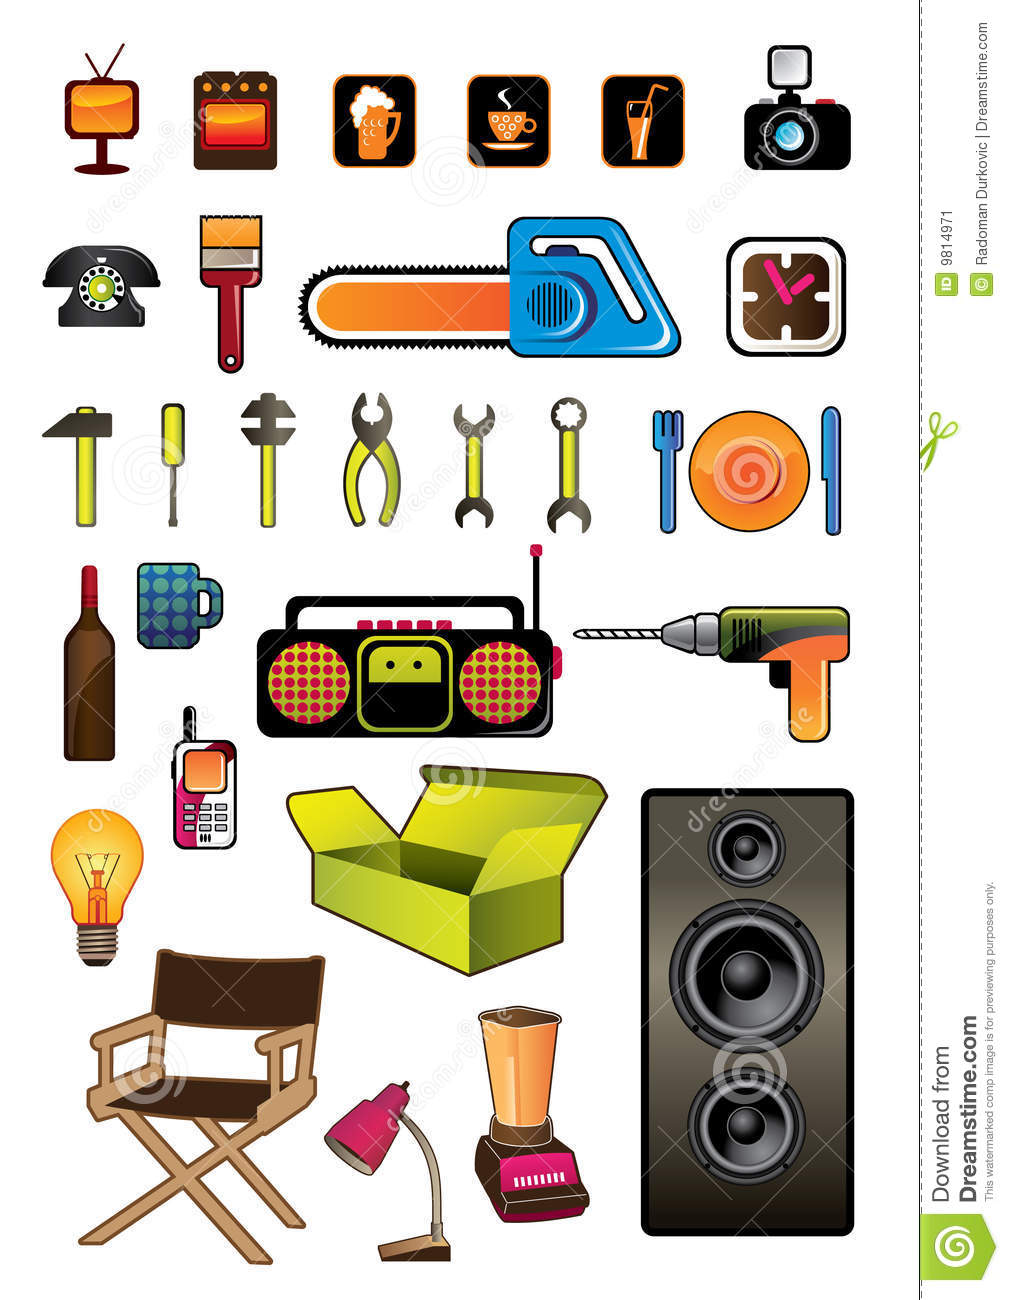 Household Items Stock Image - Image: 9814971